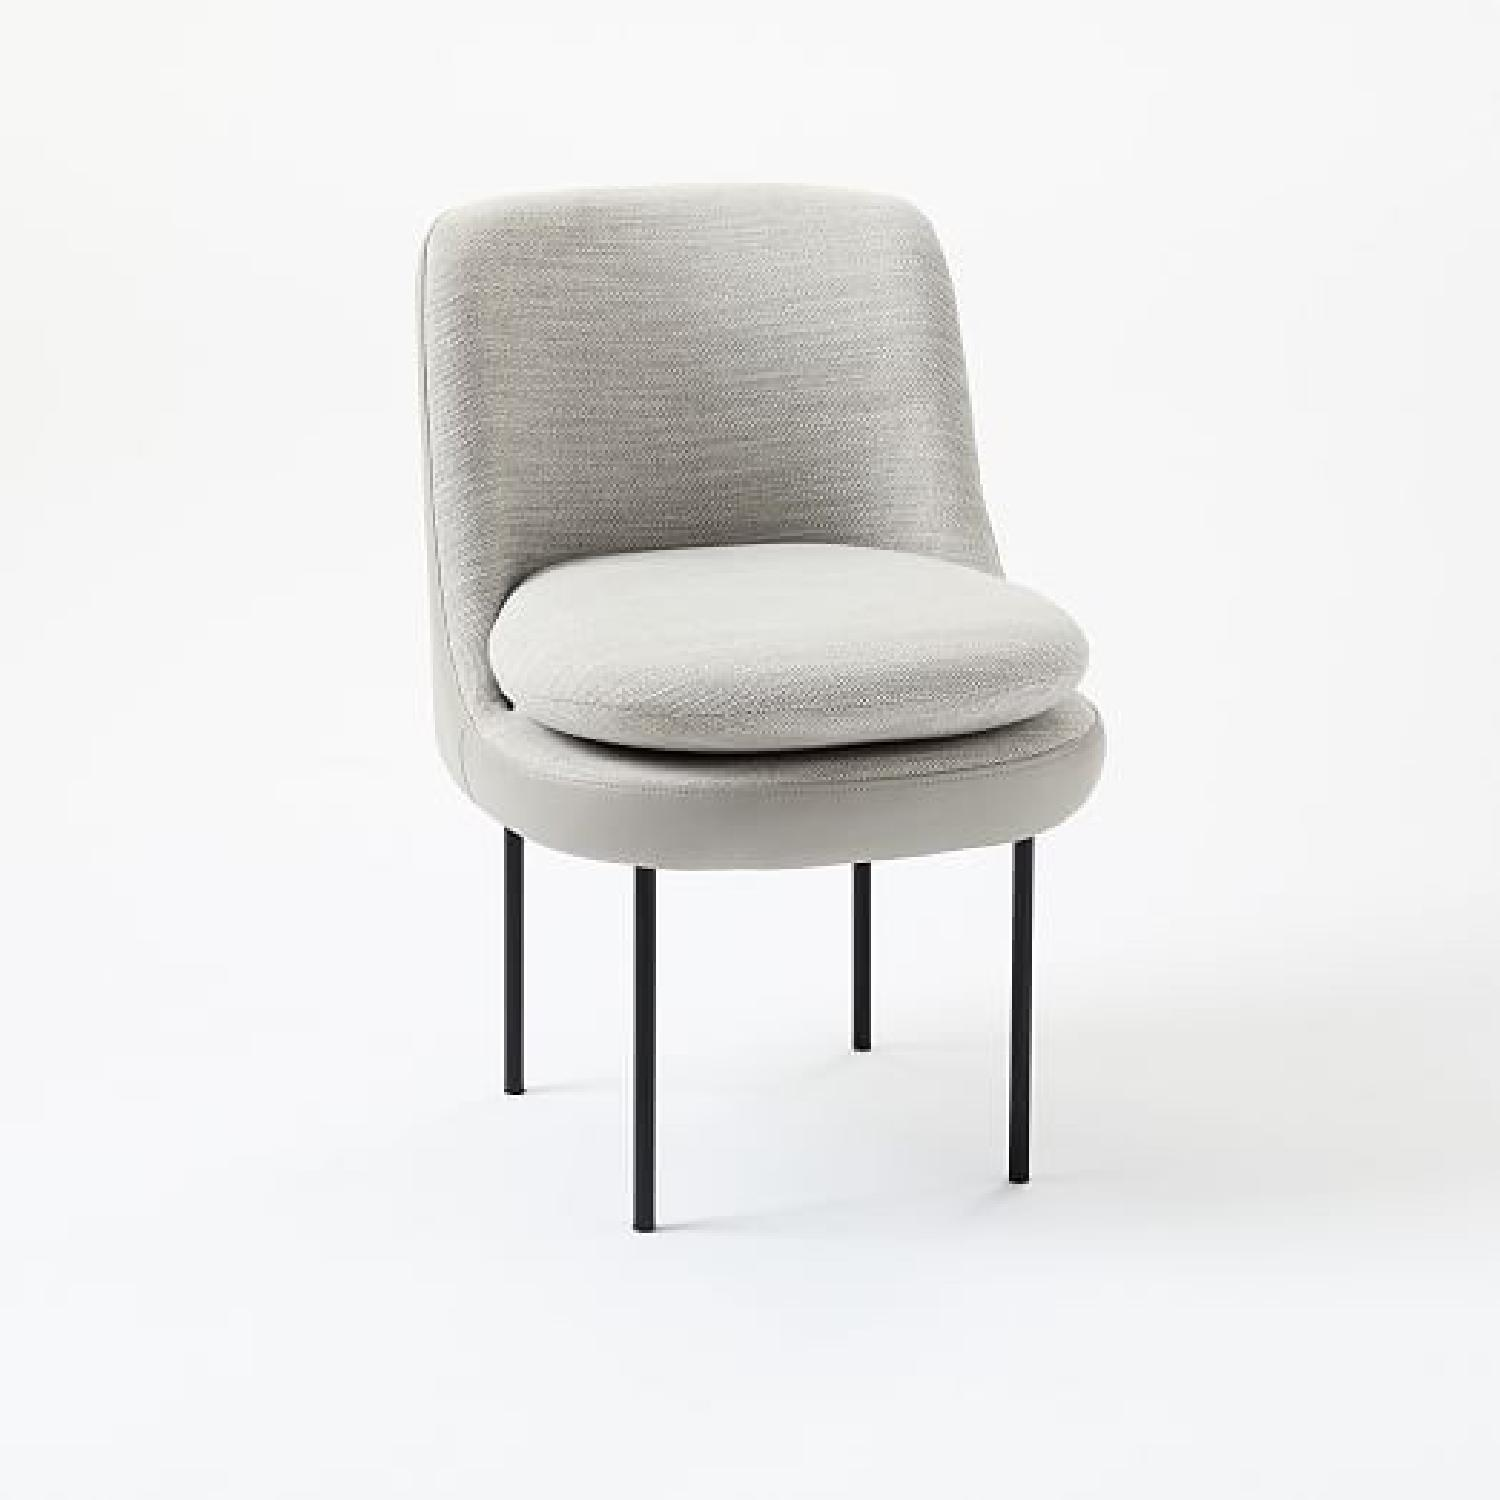 West Elm Modern Curved Chair - image-4